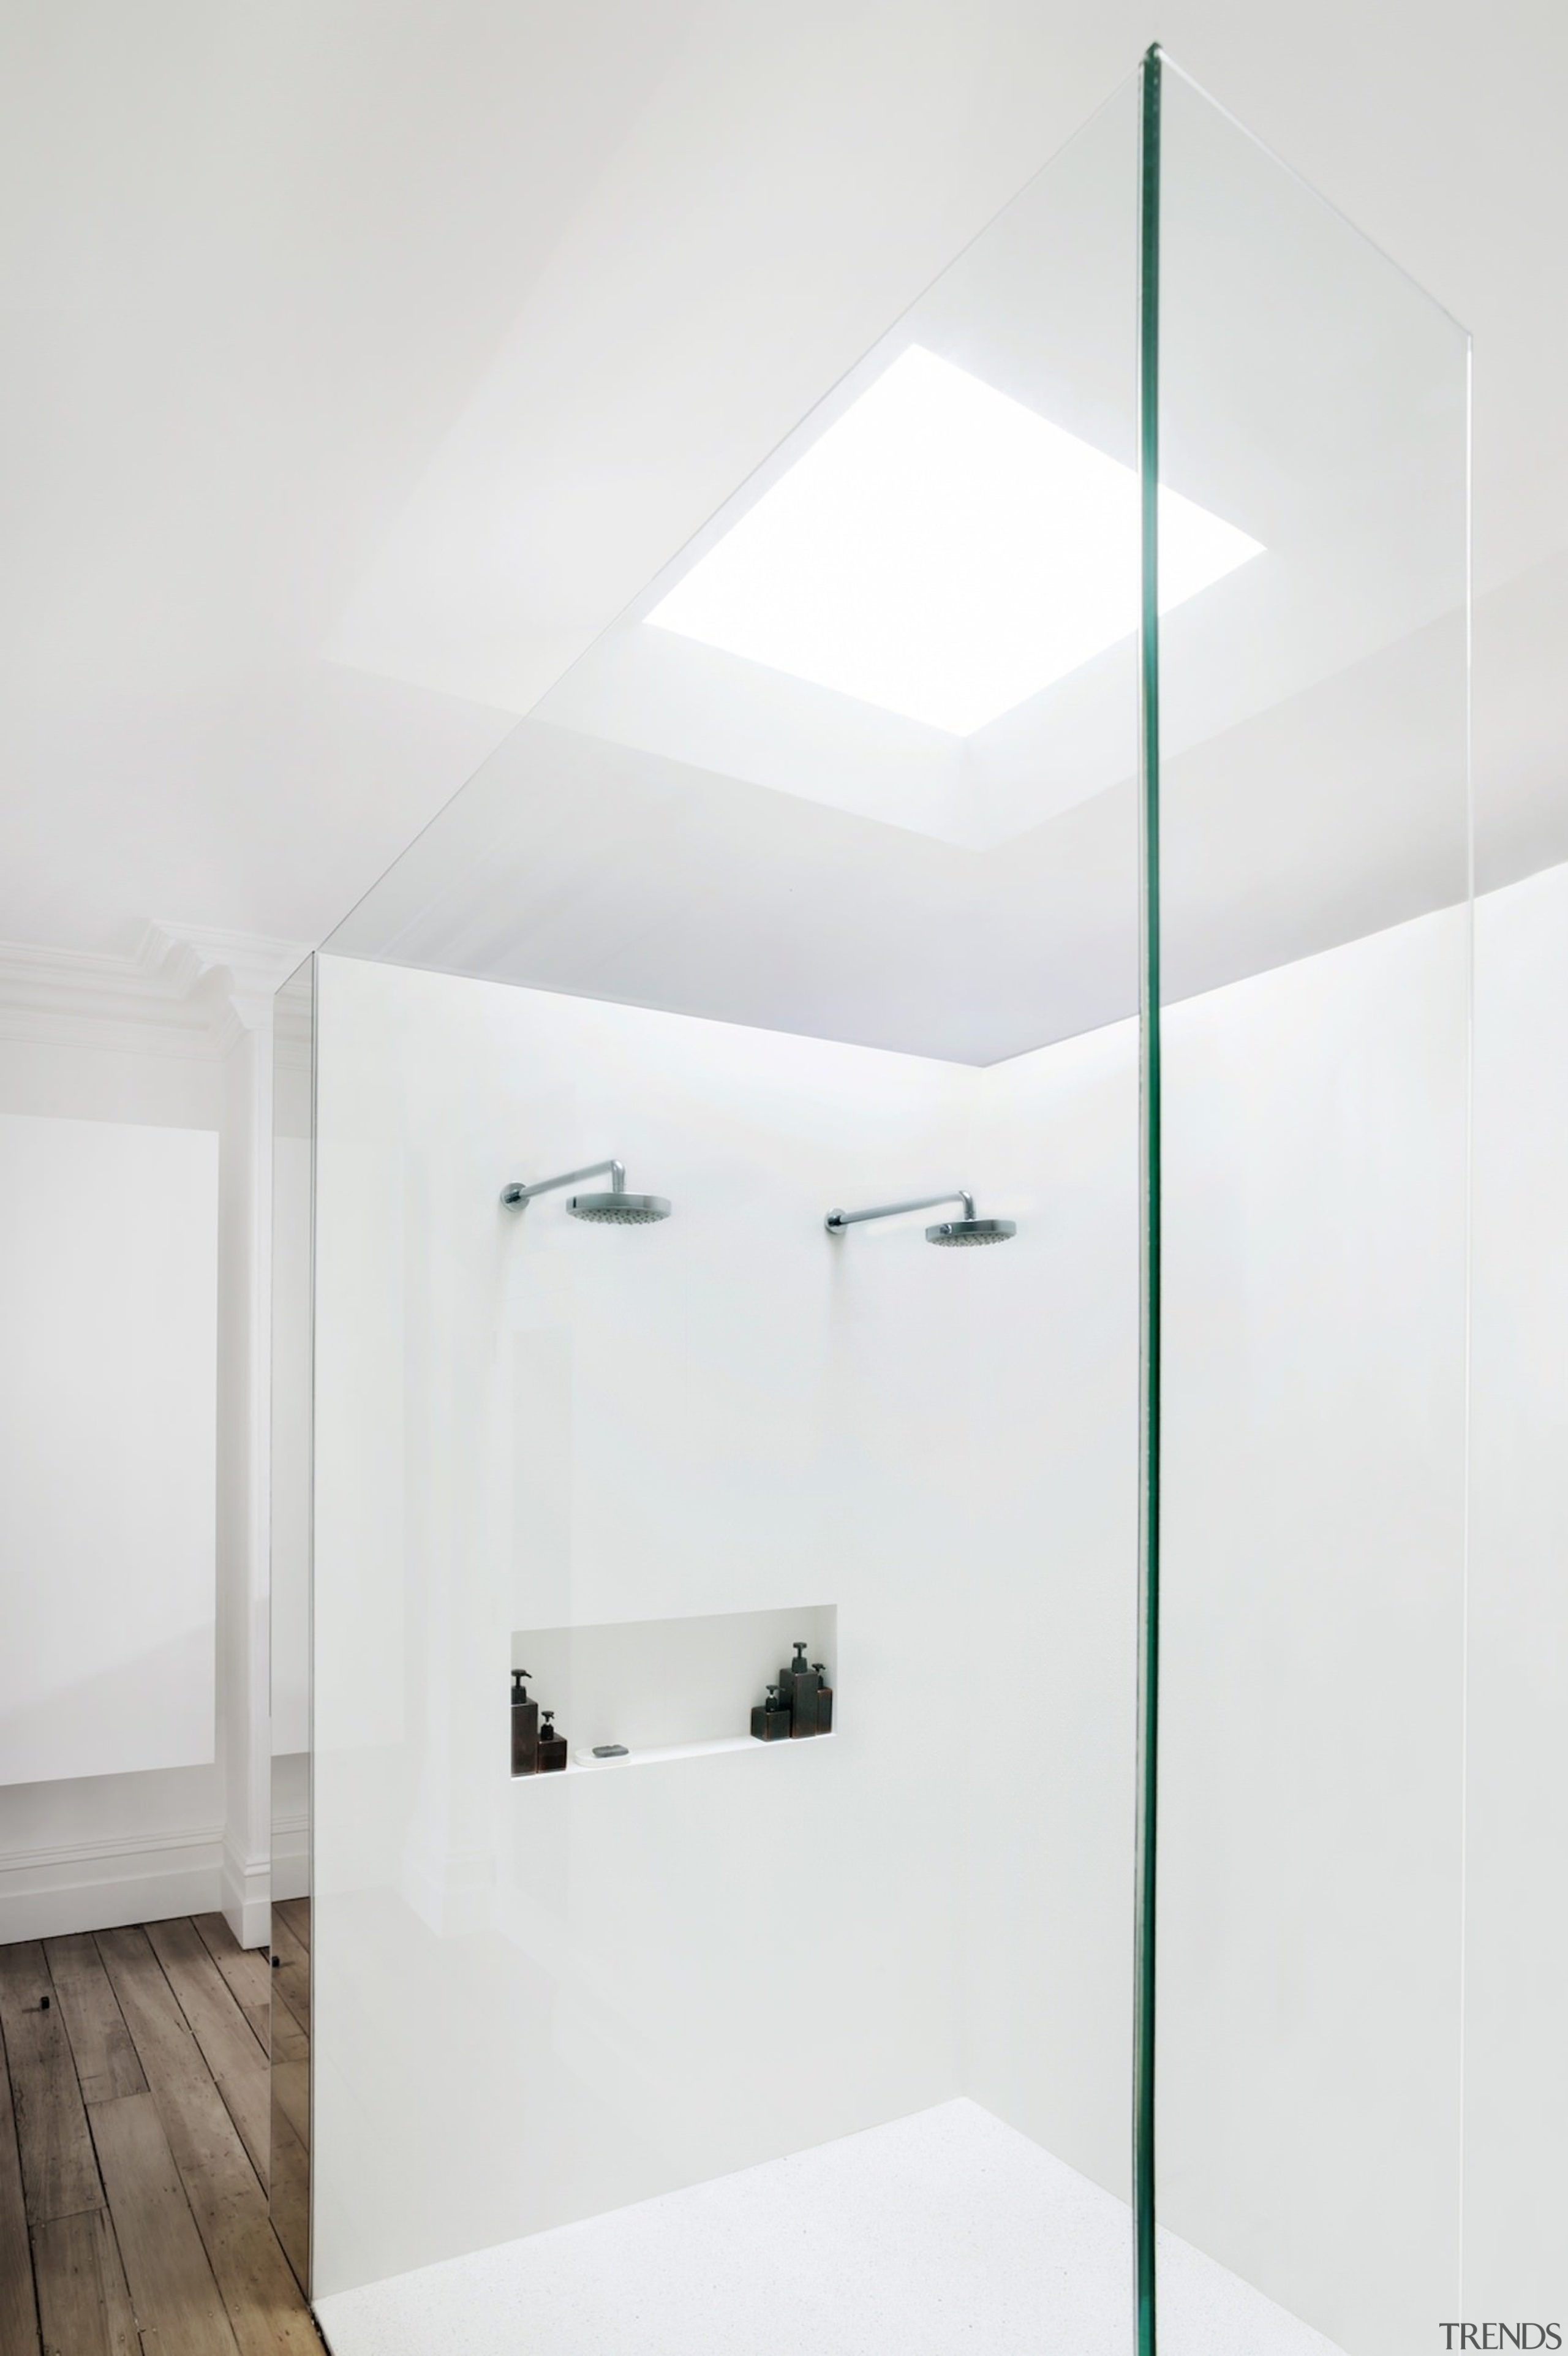 Architect: Architect PrineasPhotography by Chris Warnes angle, bathroom, bathroom sink, daylighting, interior design, plumbing fixture, product design, tap, white